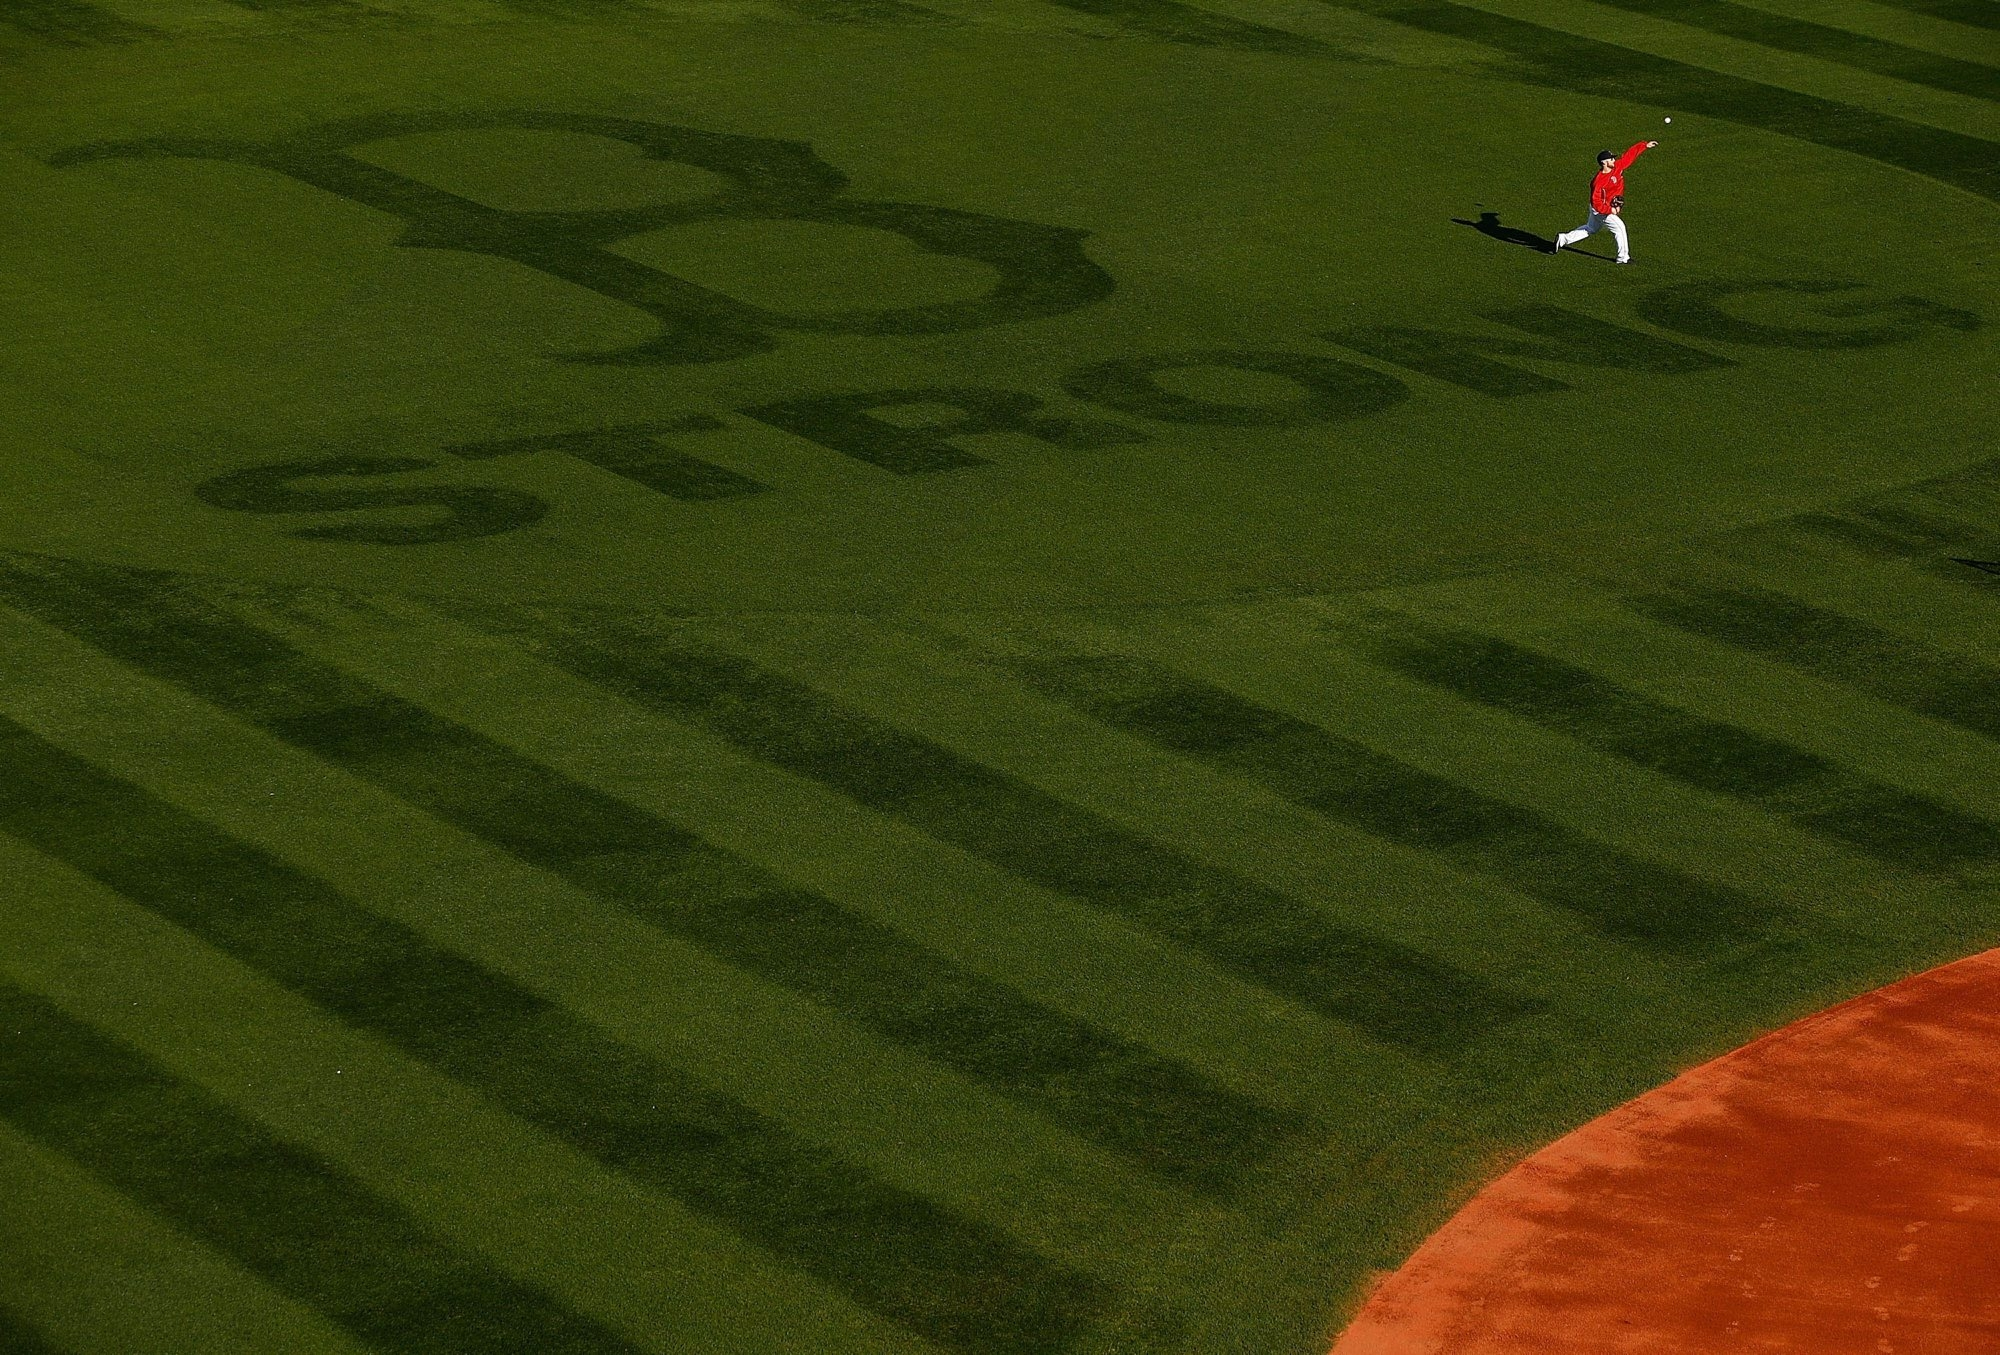 """Daniel Nava of the Red Sox works out in center field, where the Boston Strong logo with the giant Red Sox """"B"""" is mowed into the grass. Game One of the World Series is tonight between the Red Sox and the Cardinals."""